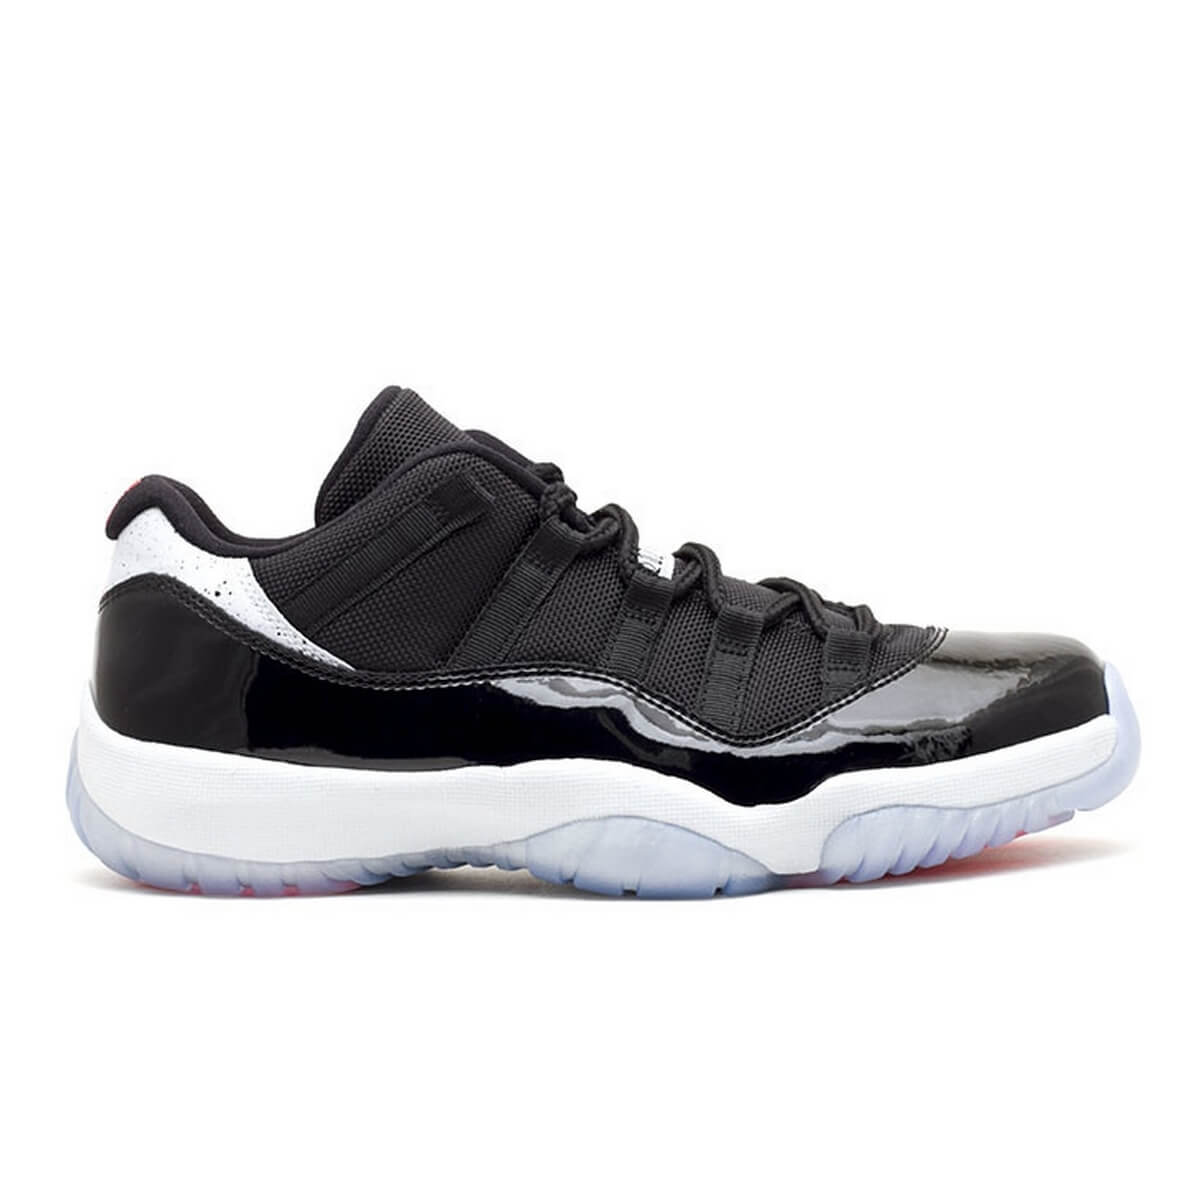 reputable site da049 28481 Nike Air Jordan 11 Retro Low Infrared 23 528895-023